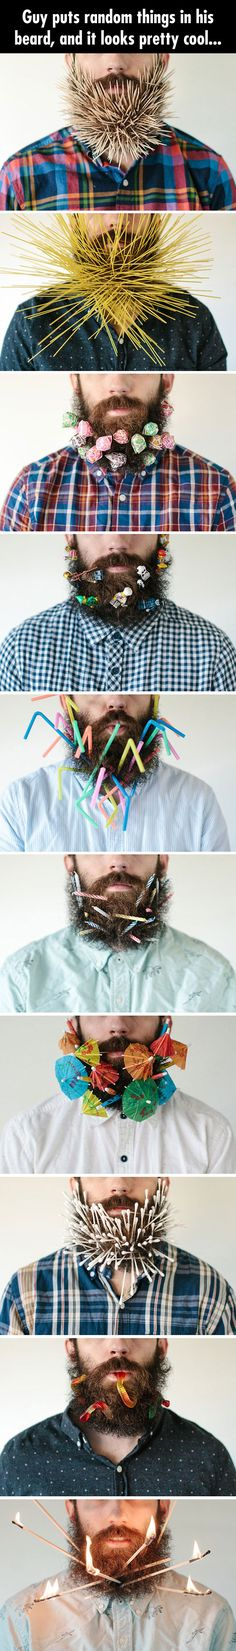 Hilarious Pictures of the week - 65 pics - Guy Puts Random Things In His Beard, And It Looks Pretty Cool